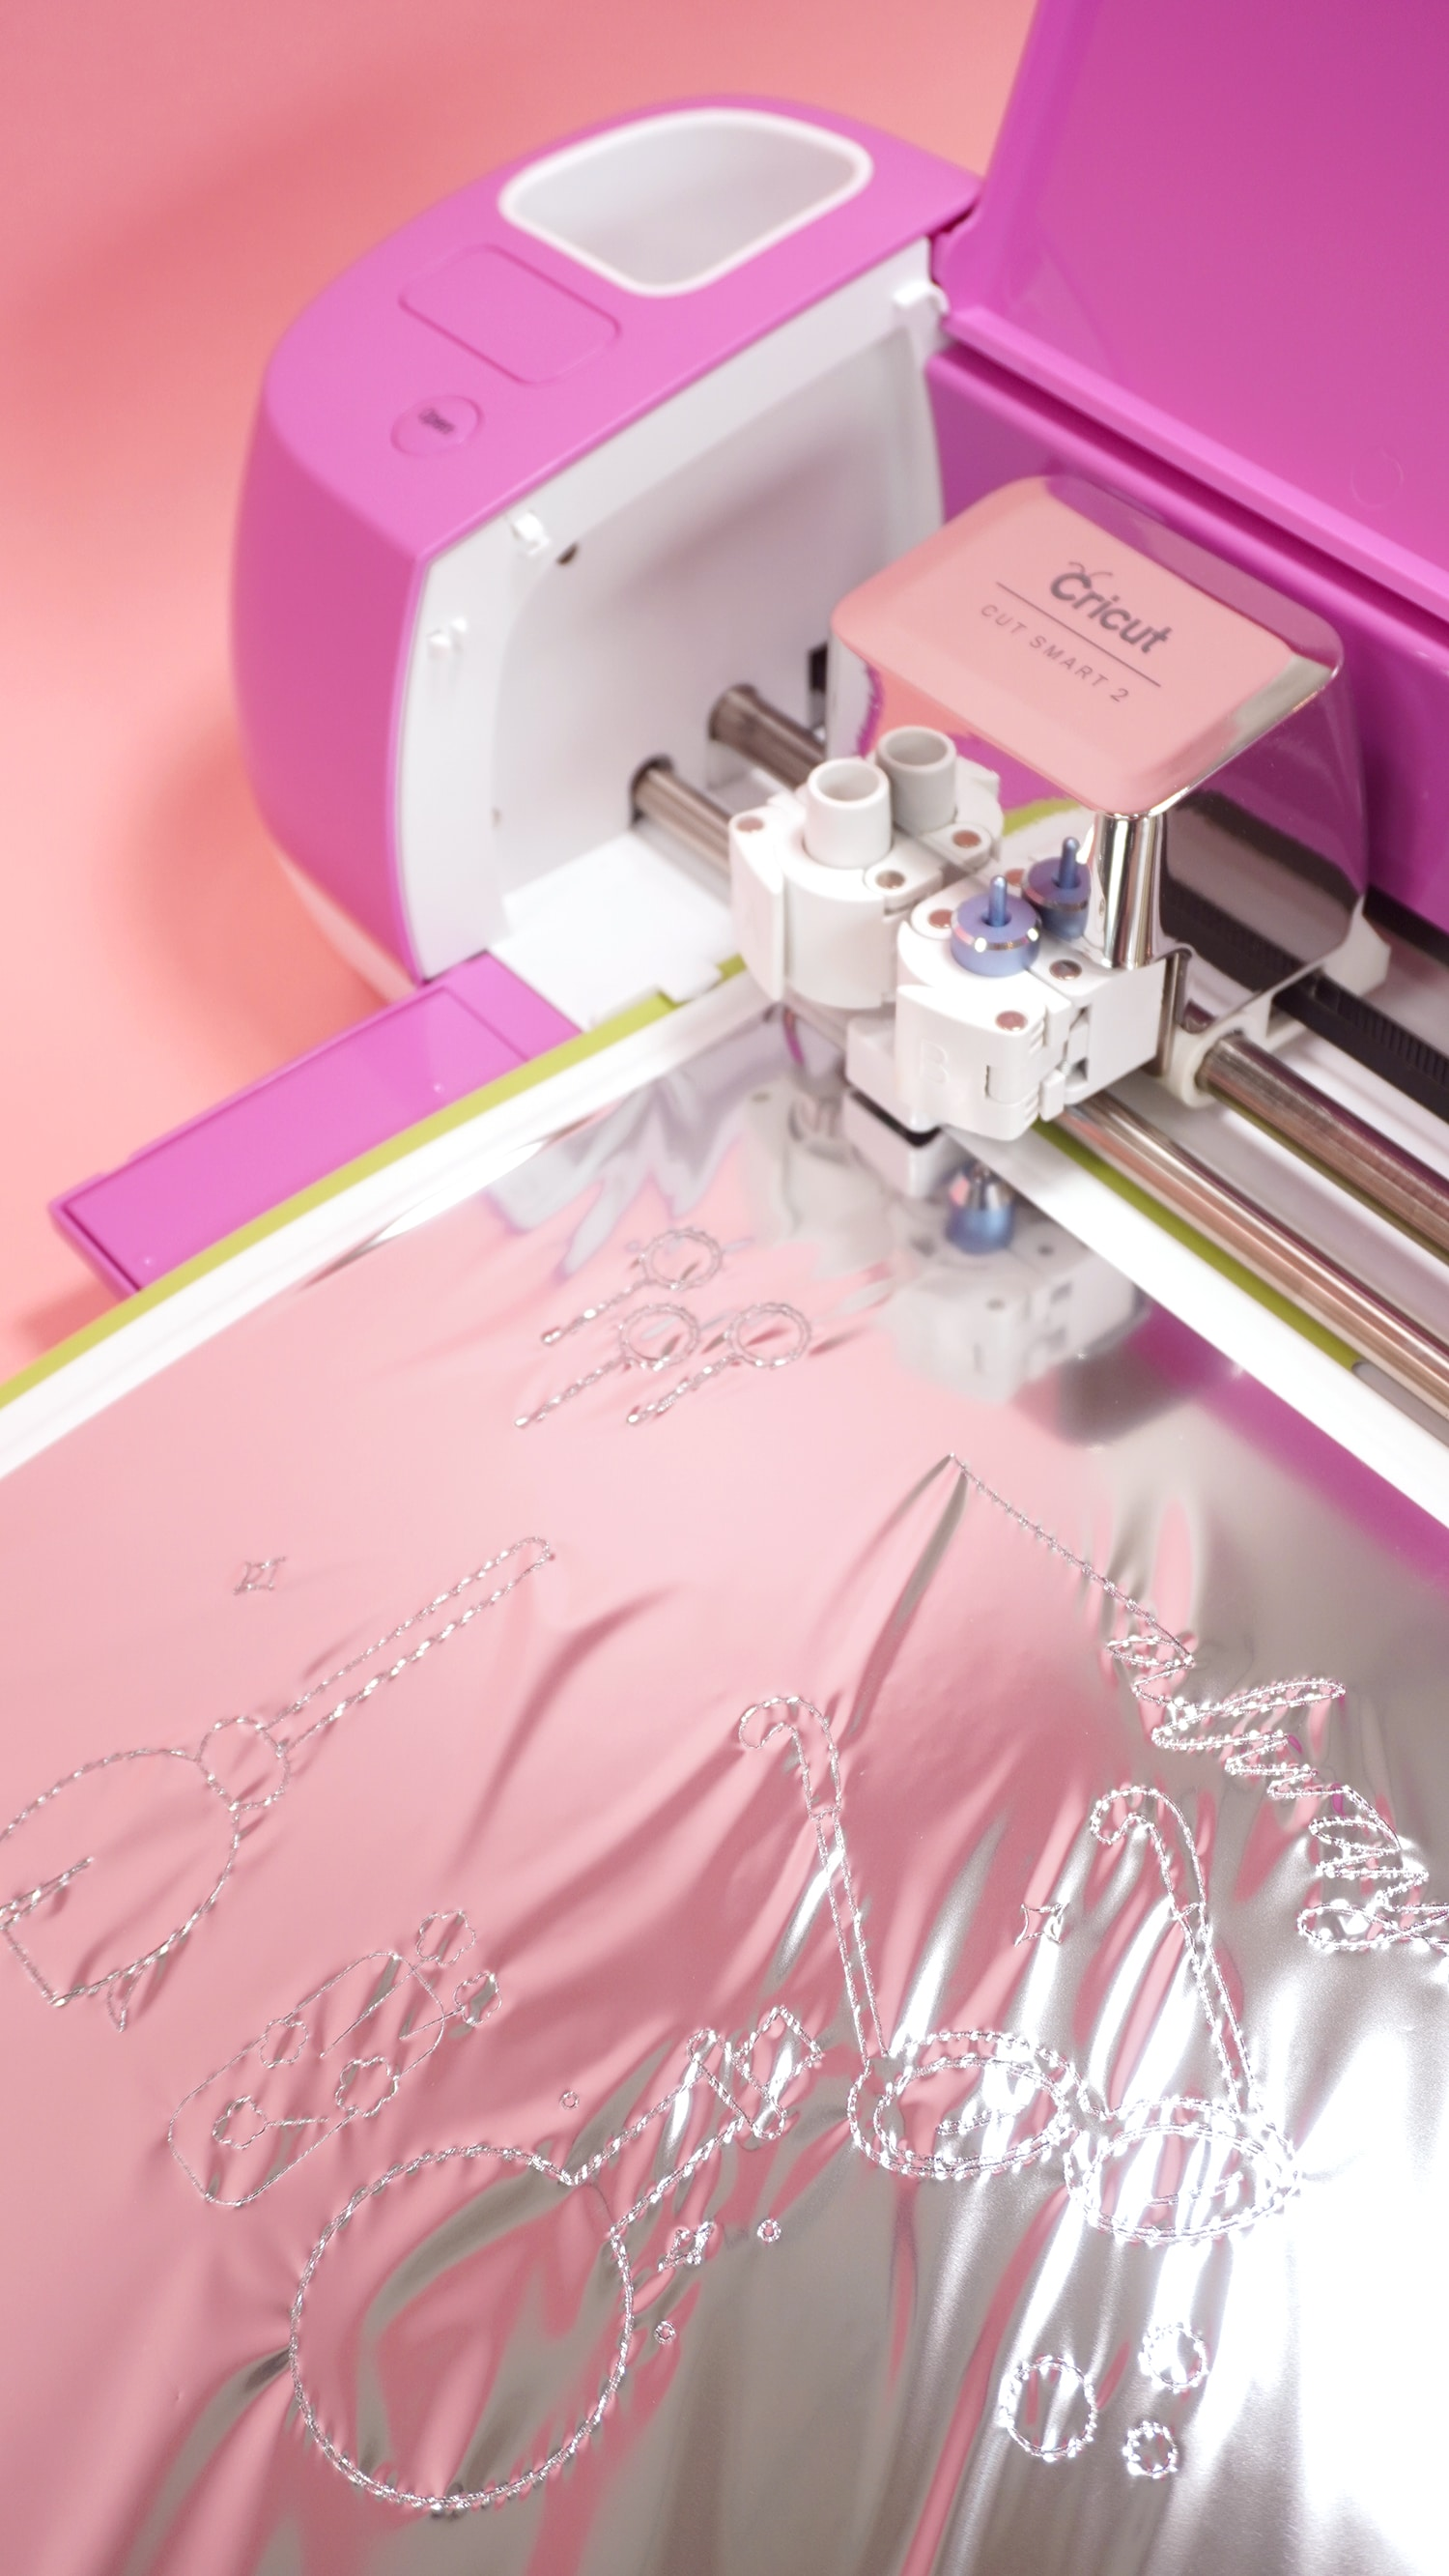 Transferring Silver Foil with Cricut Foil Transfer System on a fuchsia Explore Air 2 machine